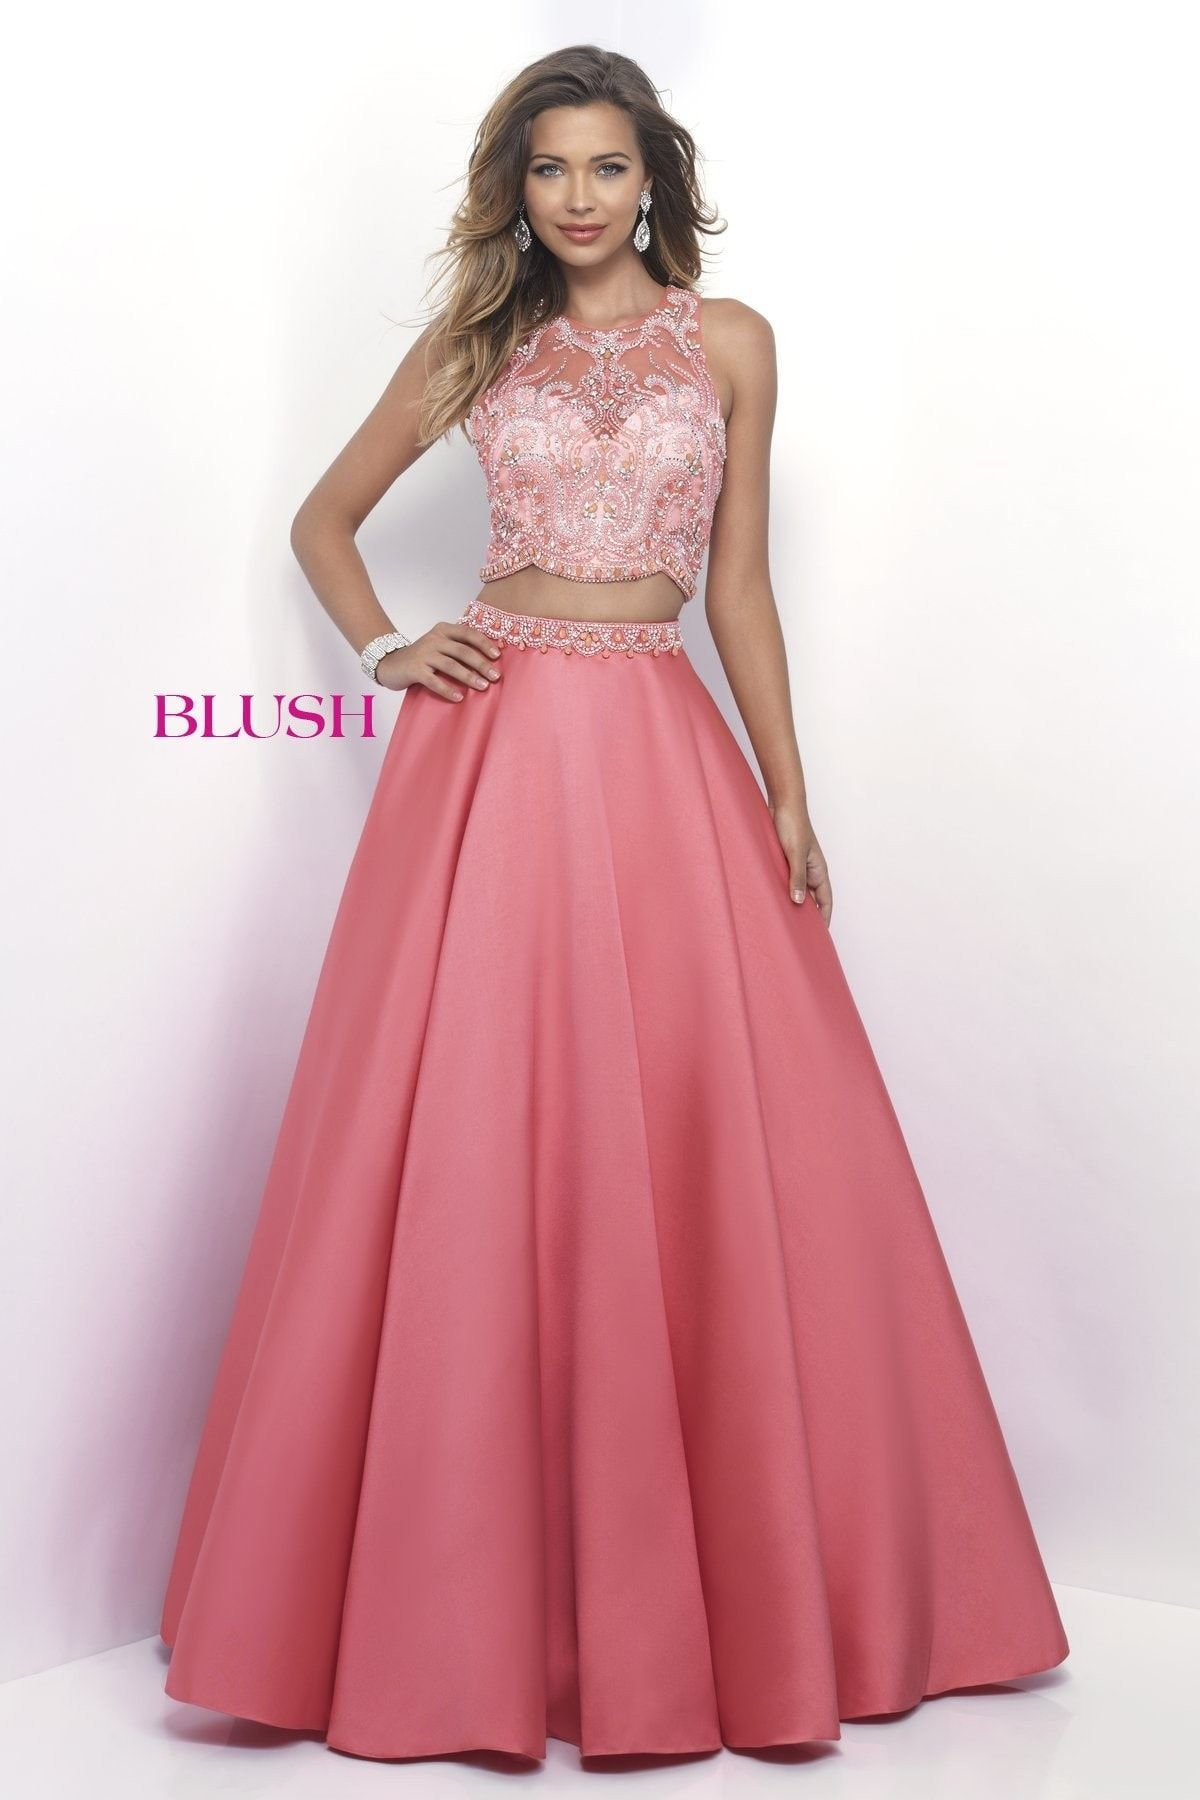 Pink by Blush 5619 Bittersweet Beaded Two-Piece Prom Dress   Ladies ...